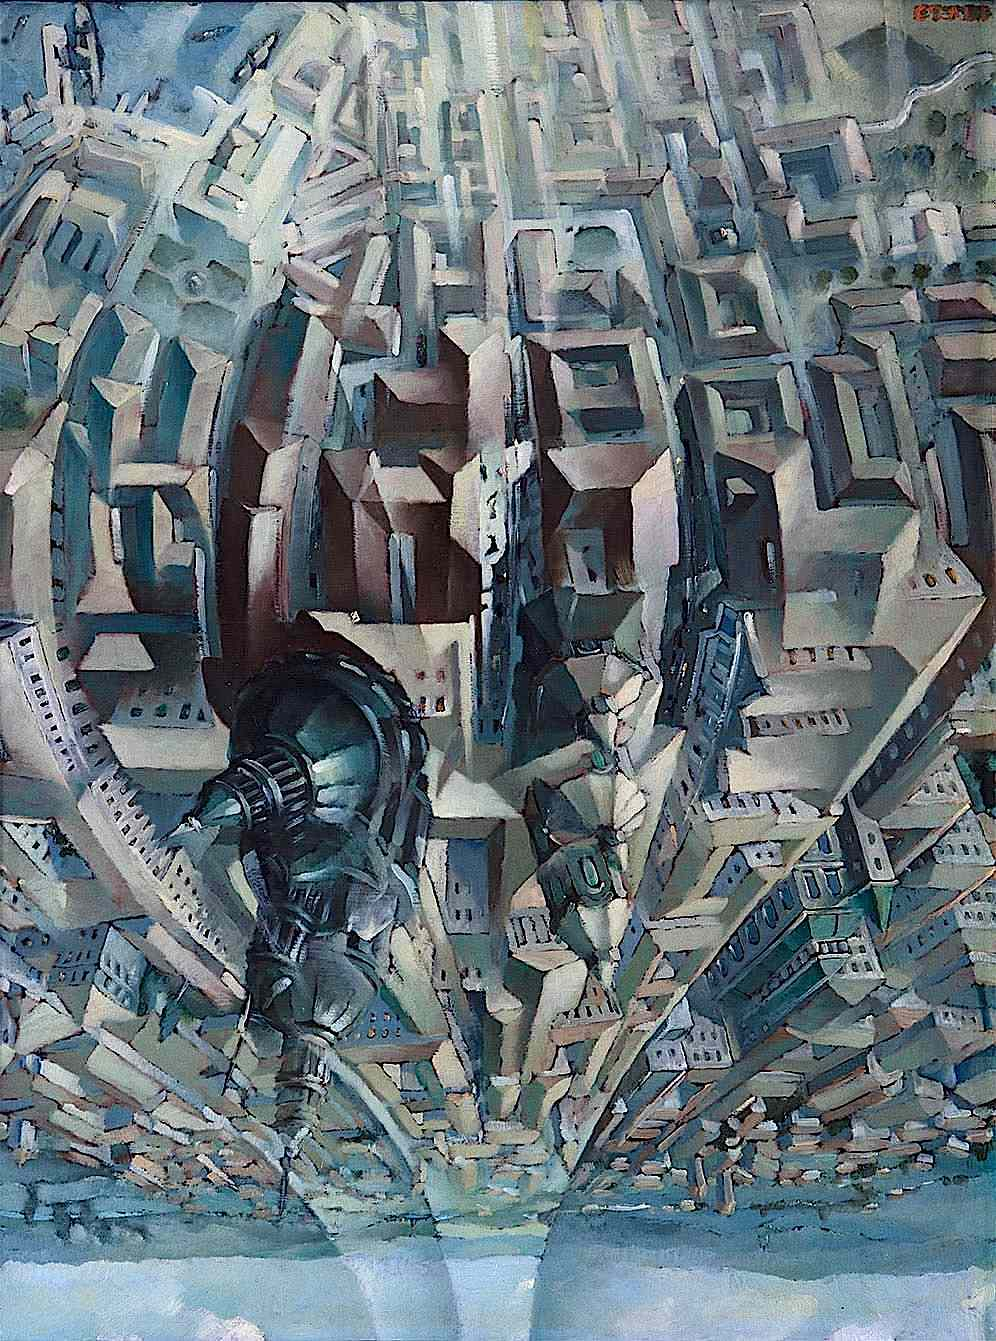 a Tullio Crali painting of a birdseye view of an urban landscape